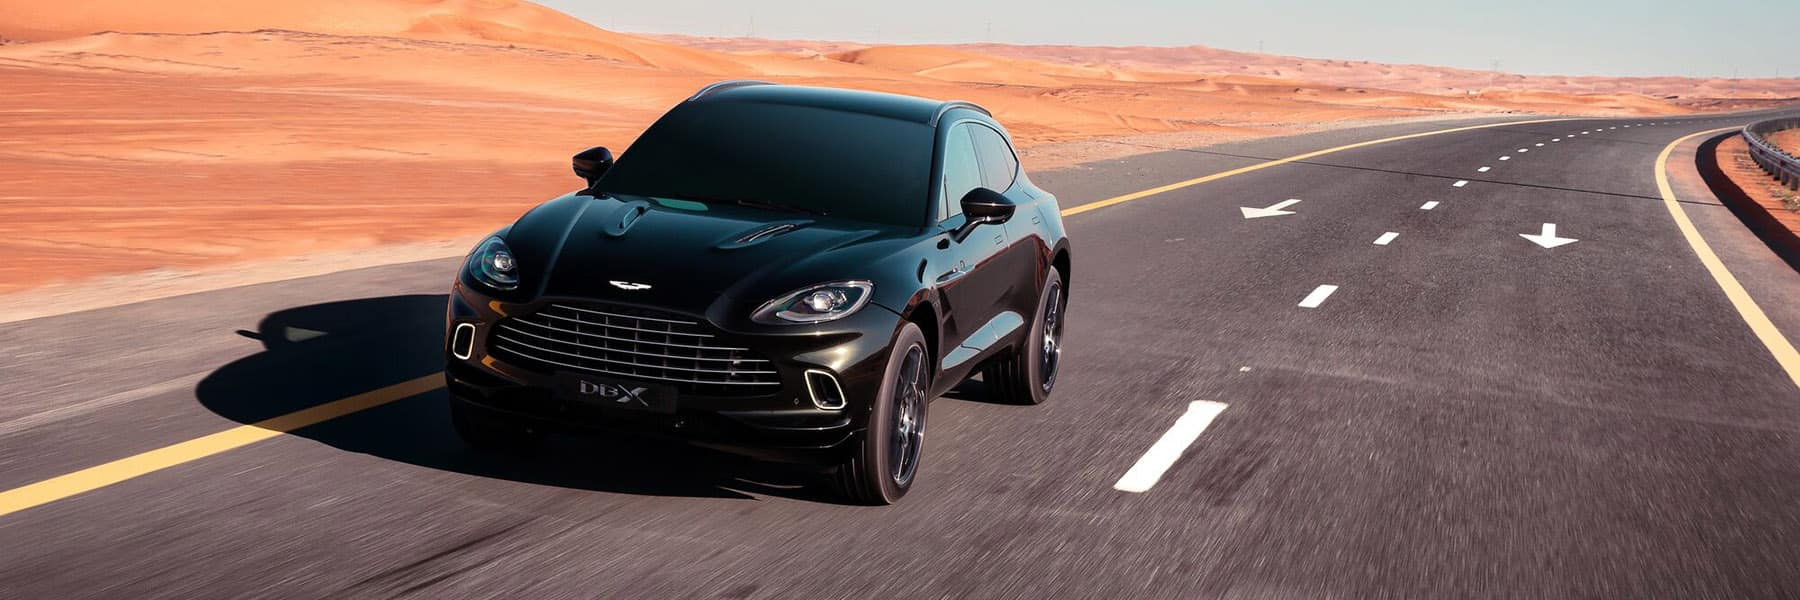 Aston Martin DBX on the road